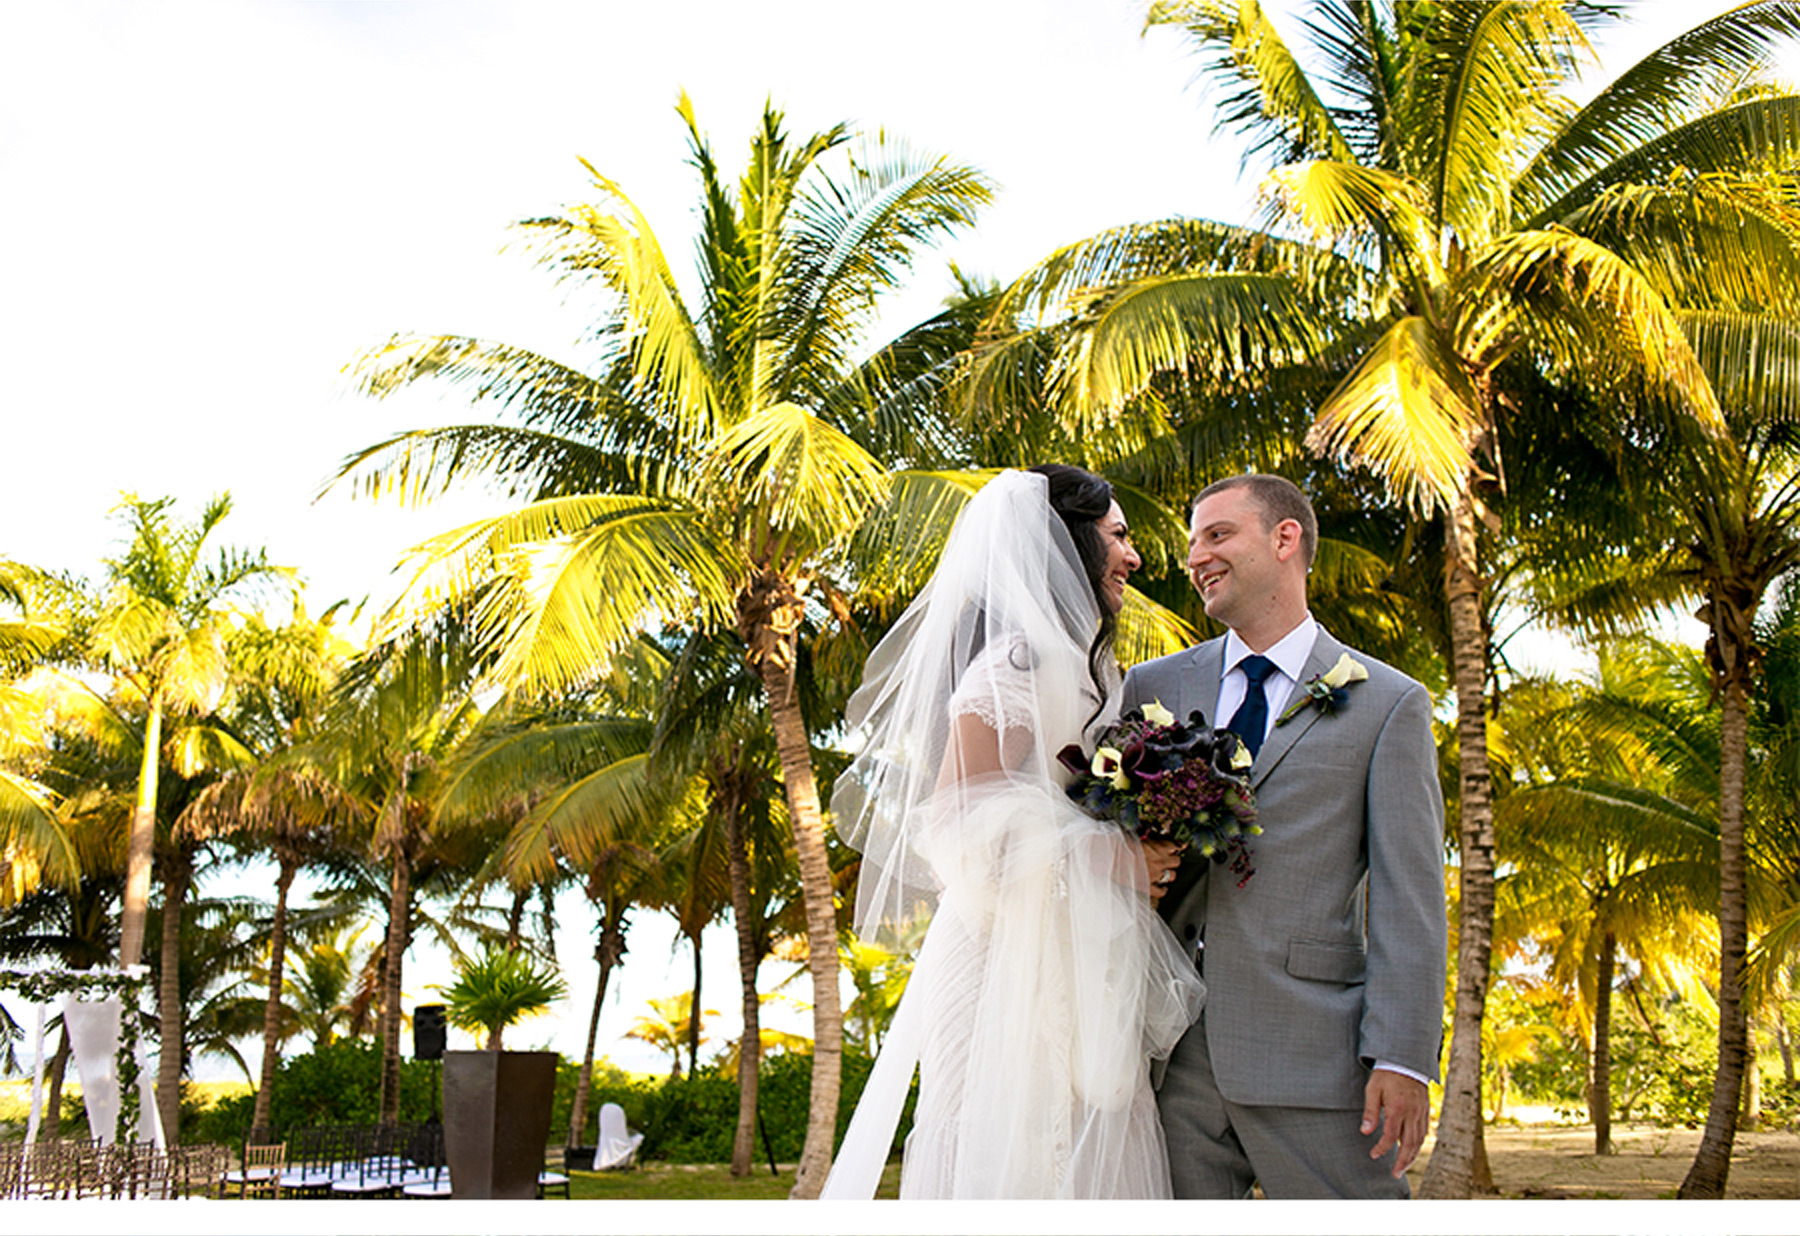 Our Muse - Tropical Wedding in Playa Mujeres, Mexico: Valerie and Thomas, Part 3 - Be inspired by Valerie and Thomas' tropical wedding in Playa Mujeres, Mexico. - invitations, wedding, ceci new york, inspiration, ceci johnson, celebration, bride, groom, event, luxury wedding invitations, couture, custom wedding invitations